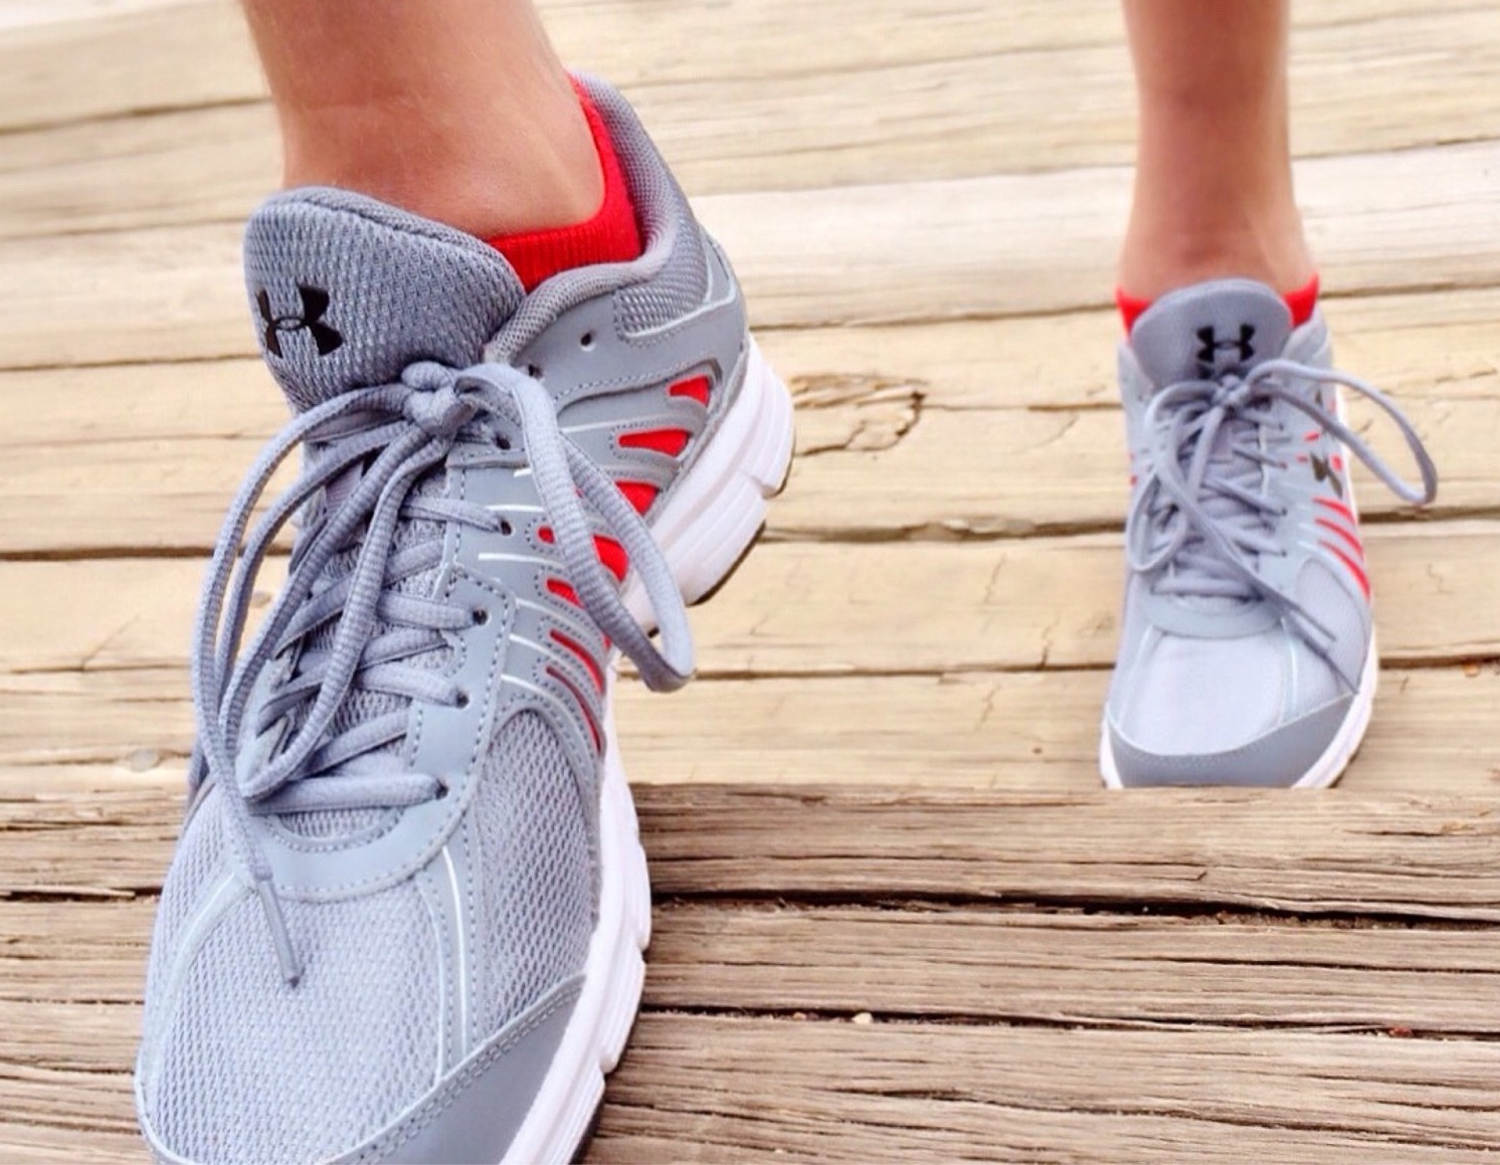 the power of power walking burn calories and get real exercise